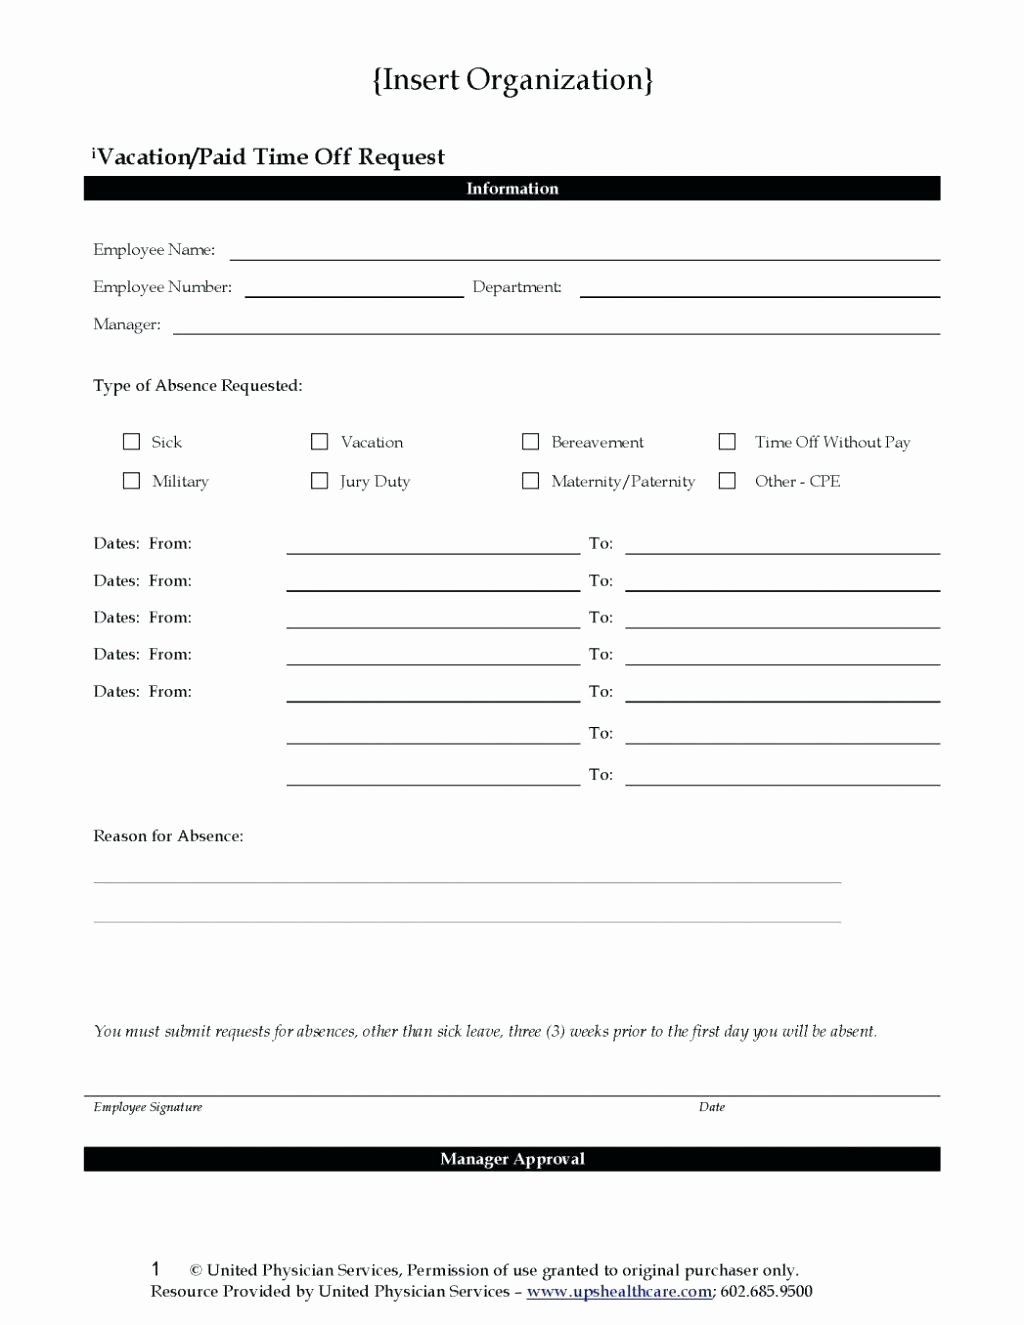 Employee Recognition form Template Awesome Template Employee Recognition form Template